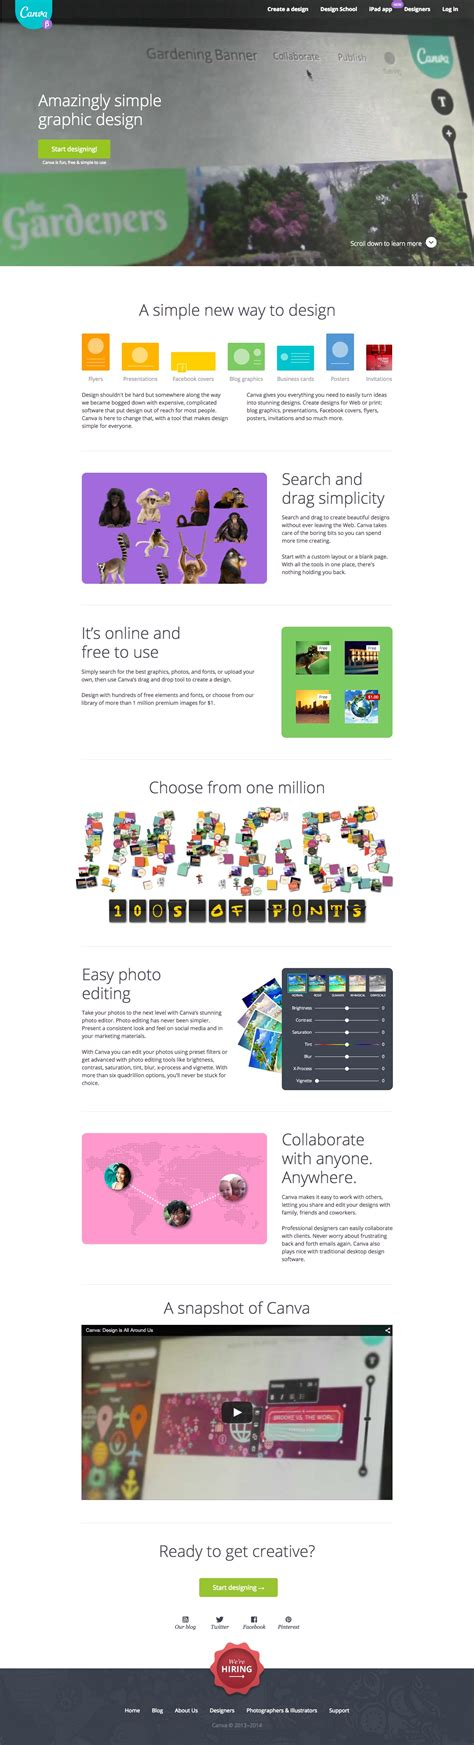 canva wireframe 35 of the hottest website home pages desktop responsive